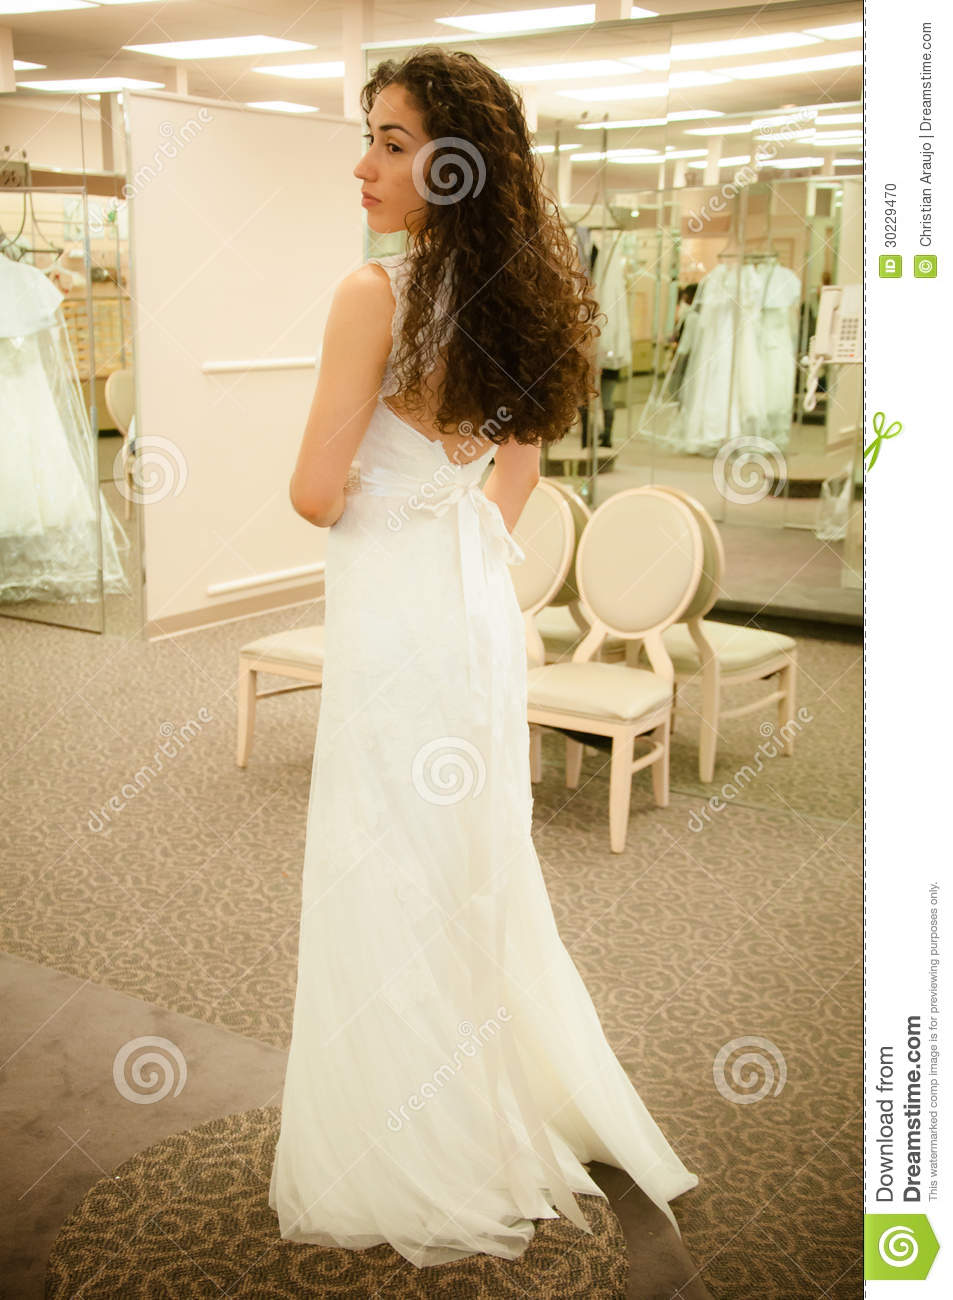 Trying wedding dress stock photo image 30229470 for Woman in wedding dress